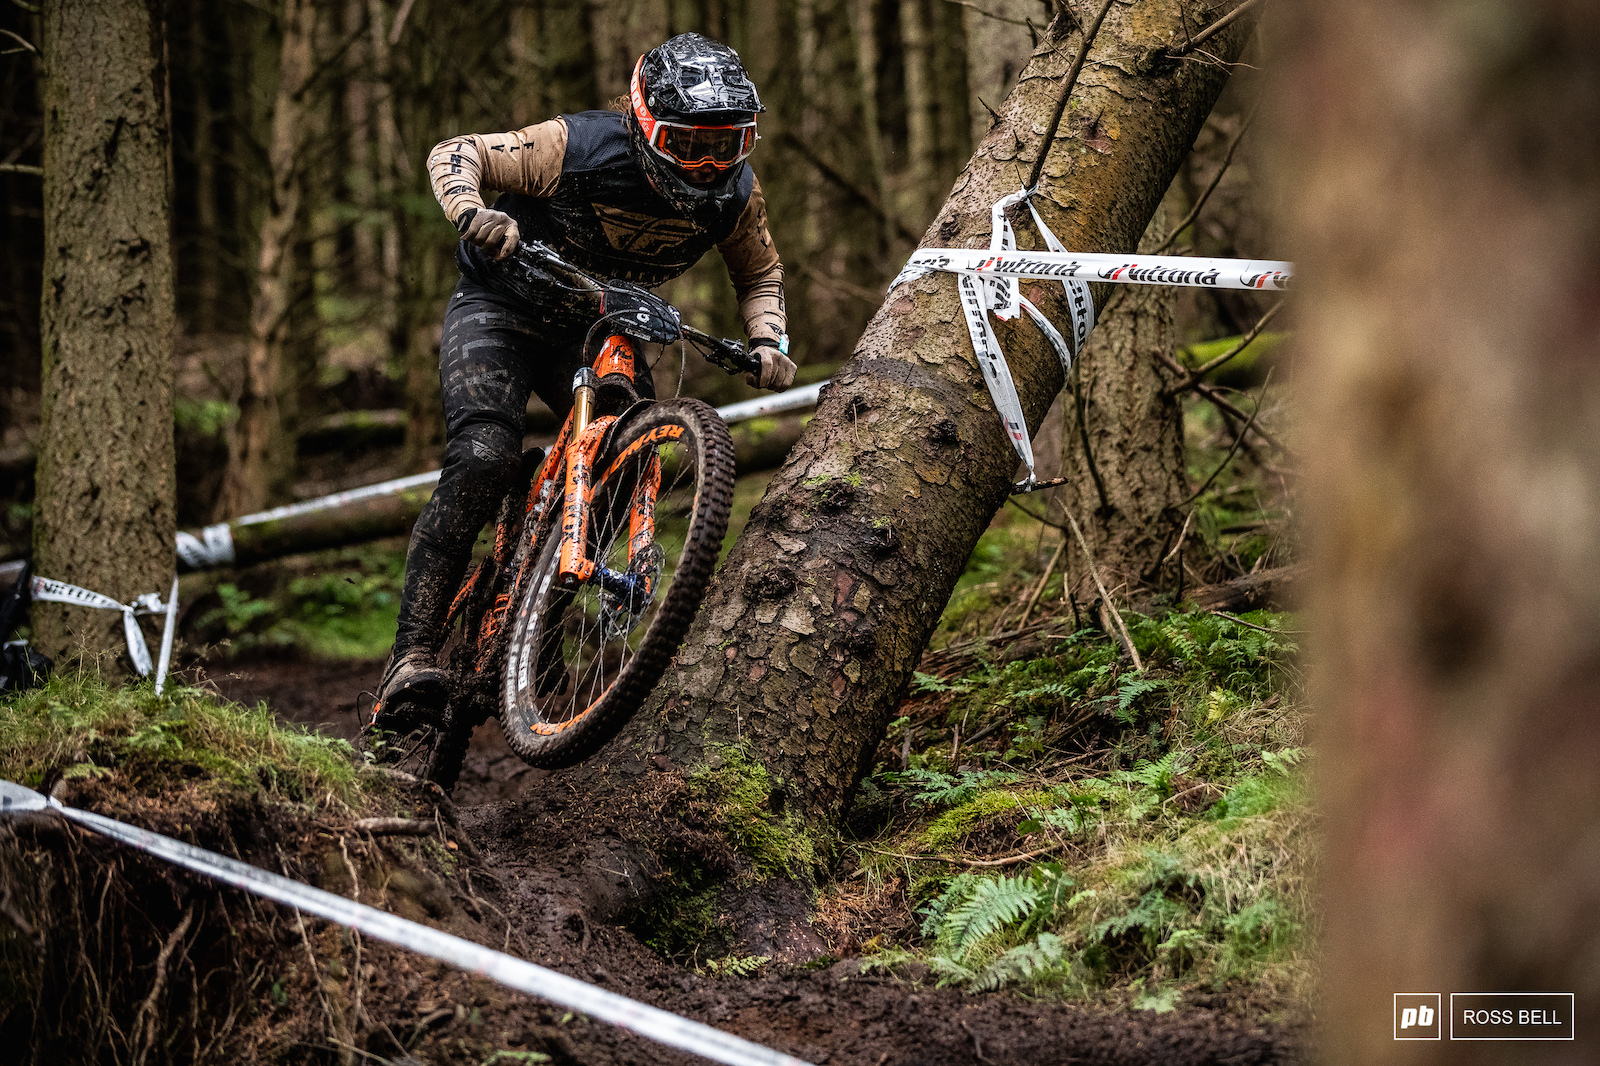 6th place today for Matt Walker in the challenging conditions.